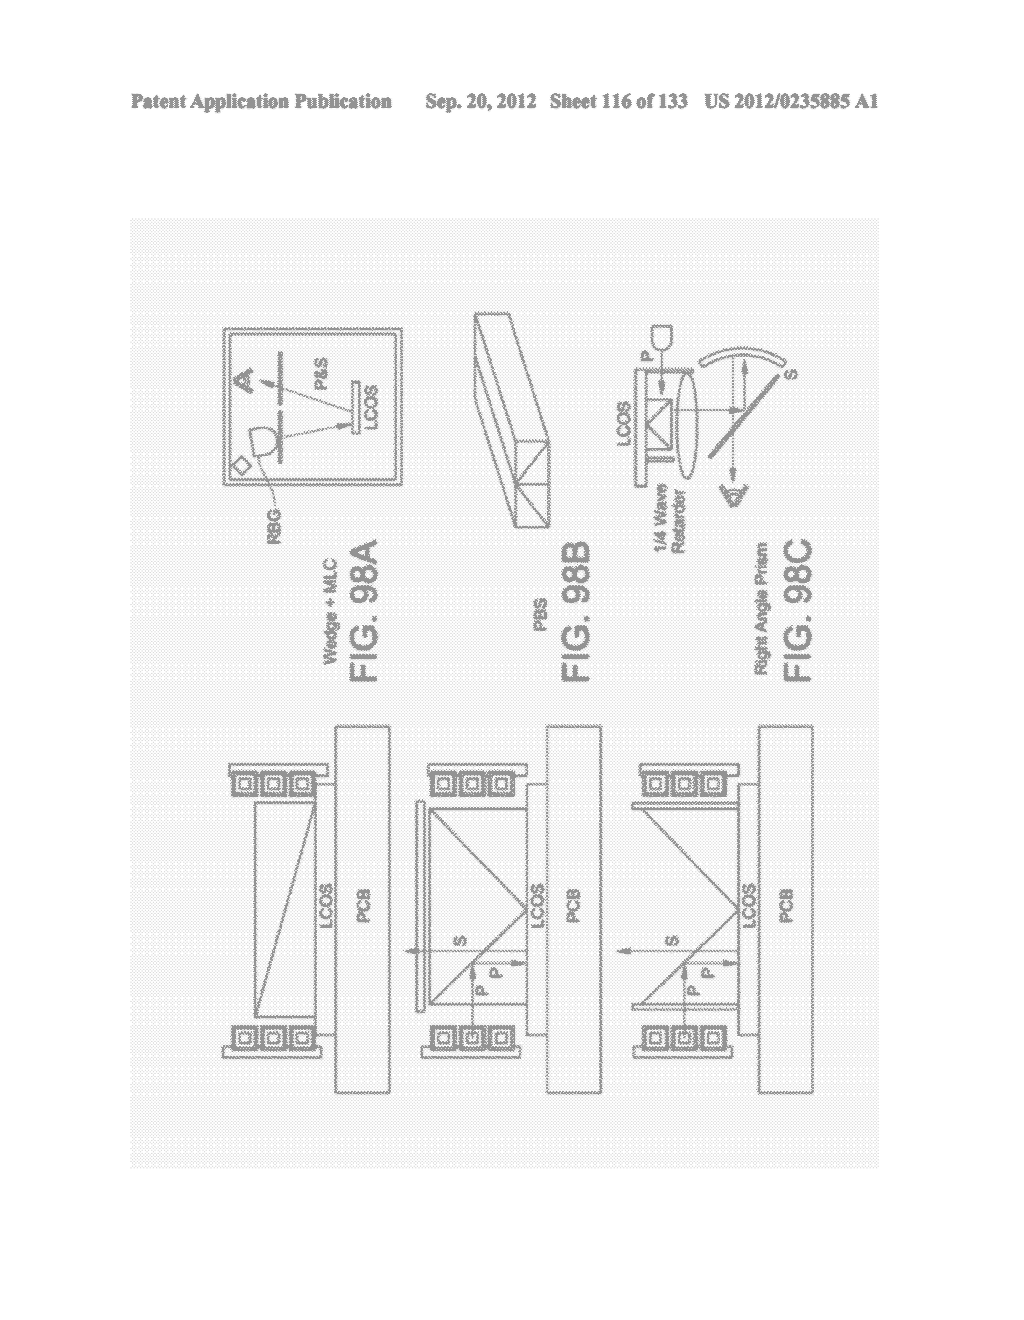 GRATING IN A LIGHT TRANSMISSIVE ILLUMINATION SYSTEM FOR SEE-THROUGH     NEAR-EYE DISPLAY GLASSES - diagram, schematic, and image 117